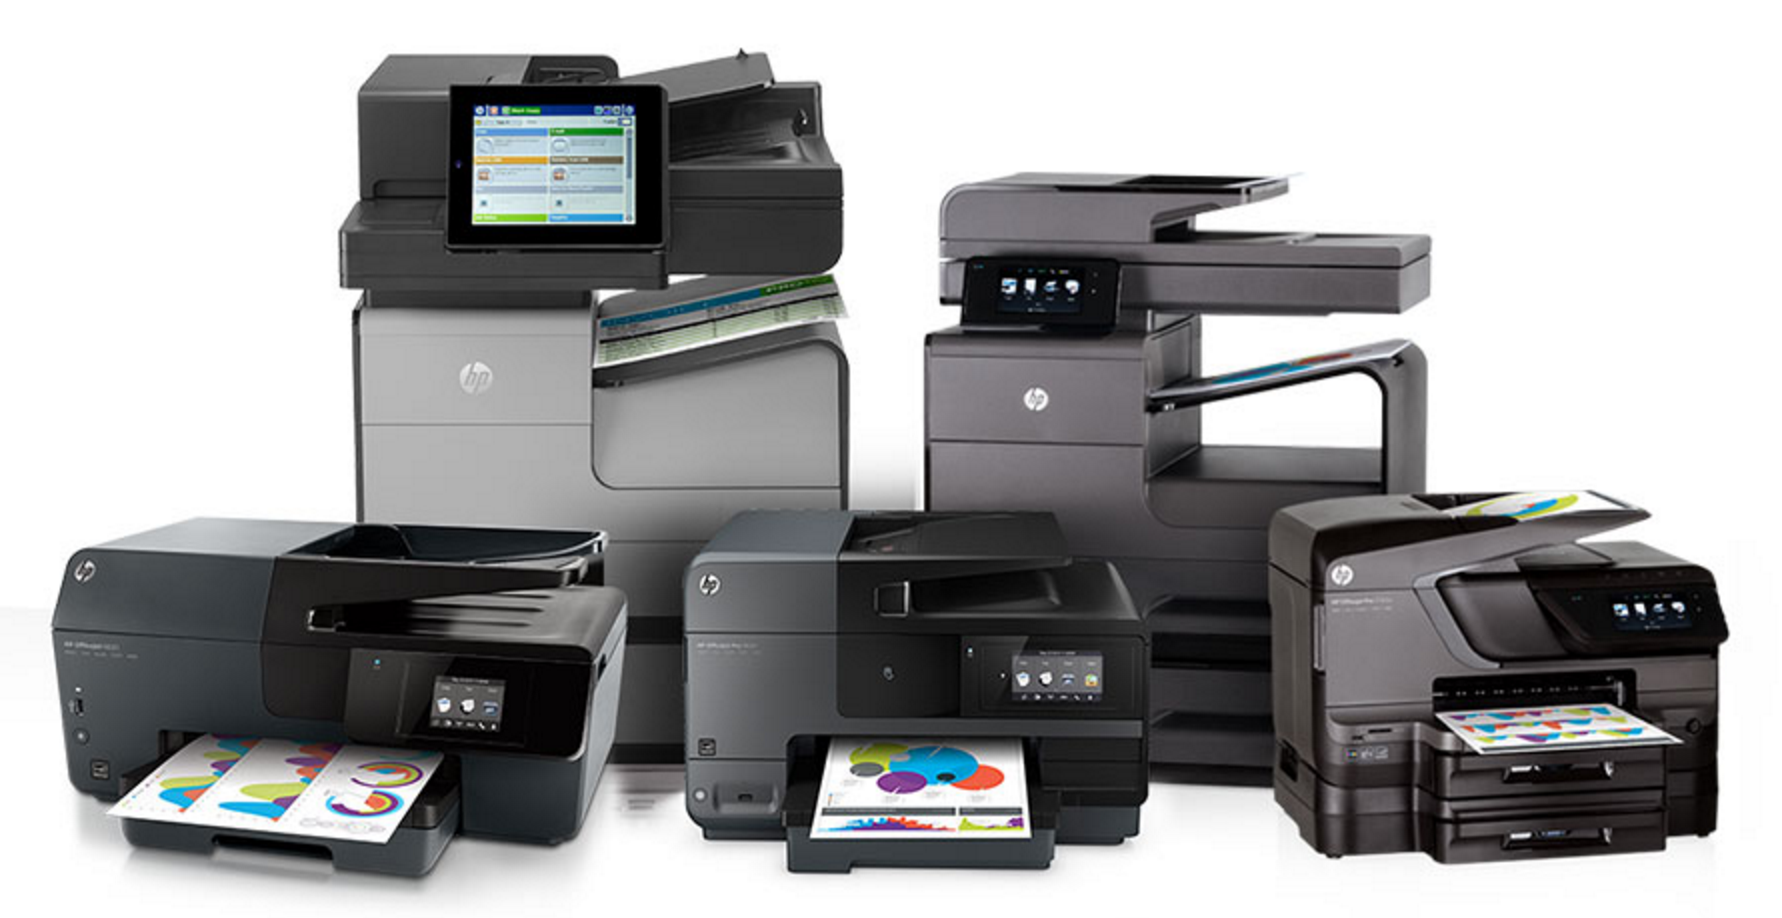 HP Officejet ProX